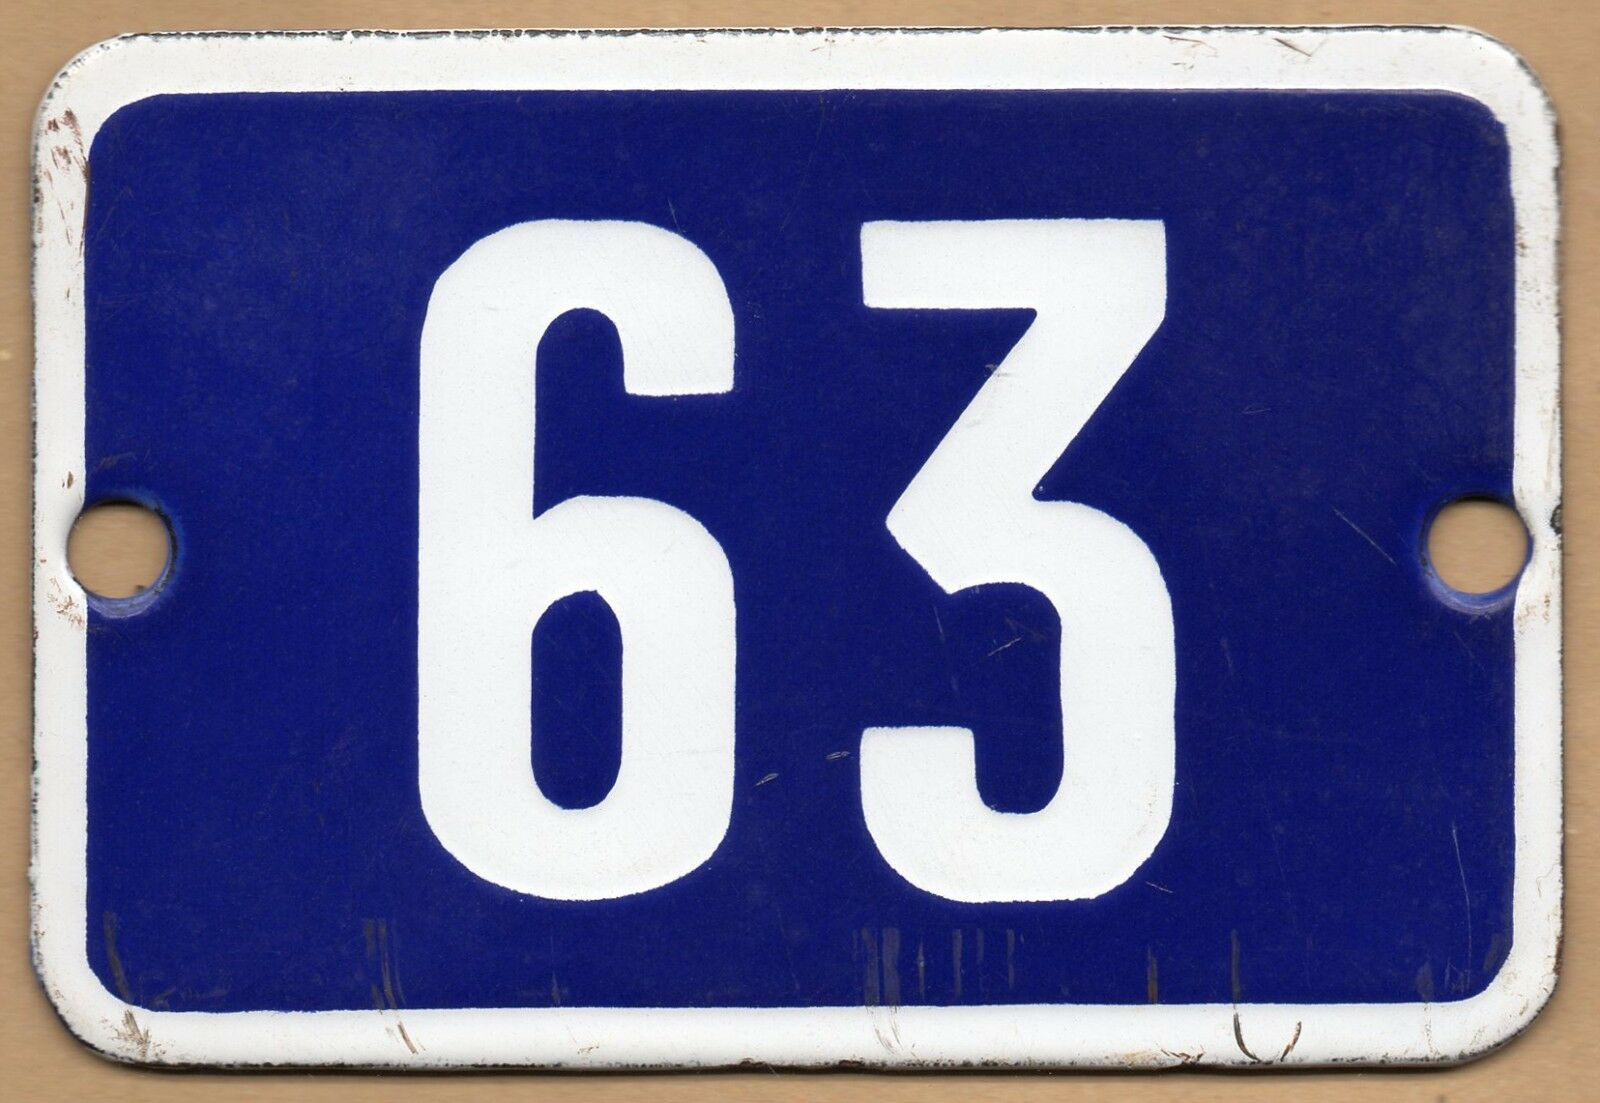 Cute old blue French house number 63 door gate plate plaque enamel metal sign